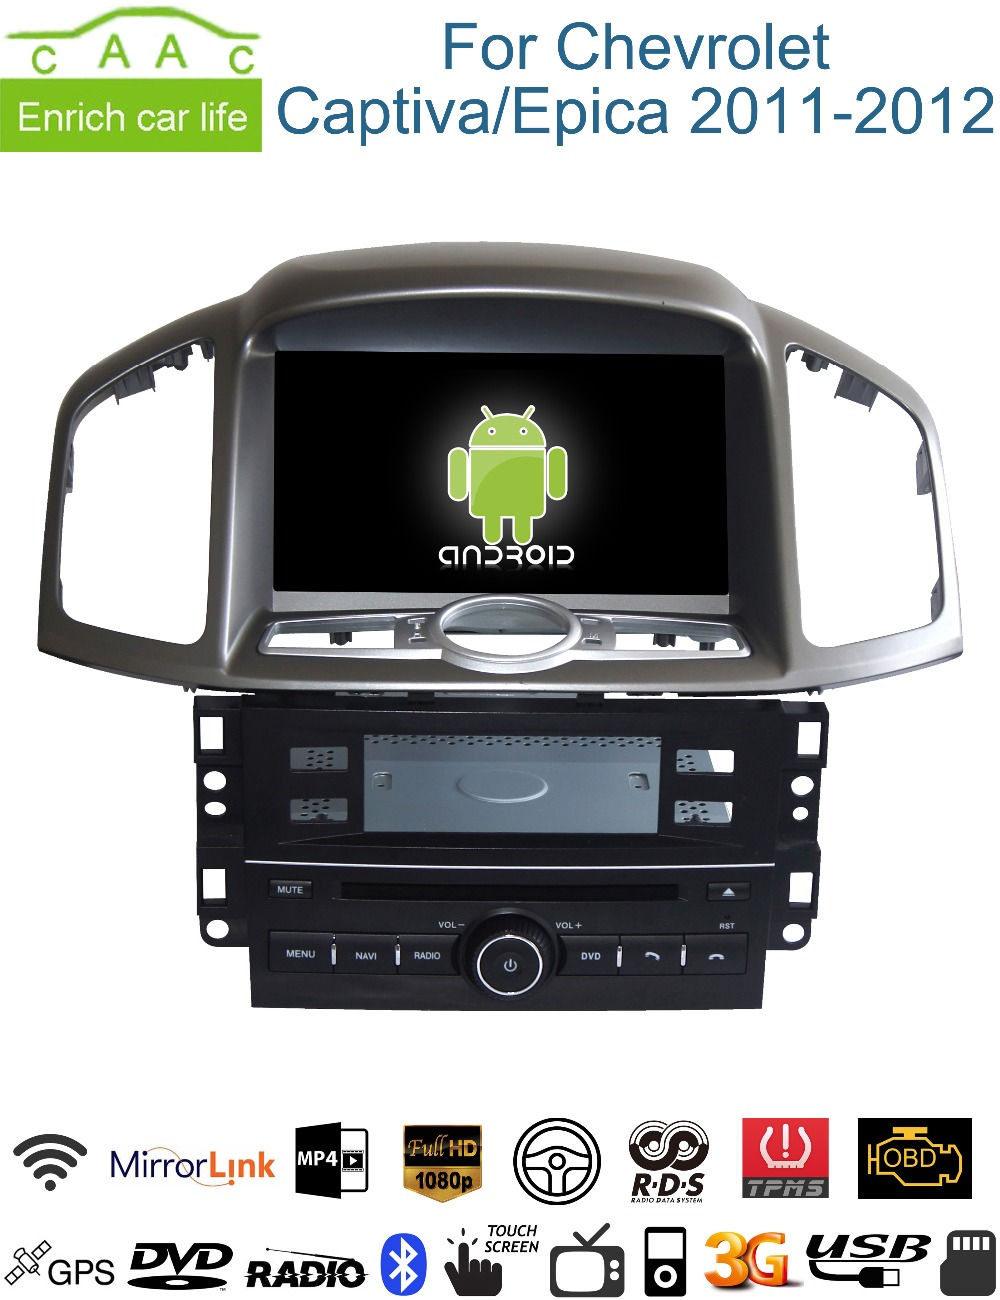 buy android gps navigation 8 car dvd player for chevrolet captiva epica 2011. Black Bedroom Furniture Sets. Home Design Ideas